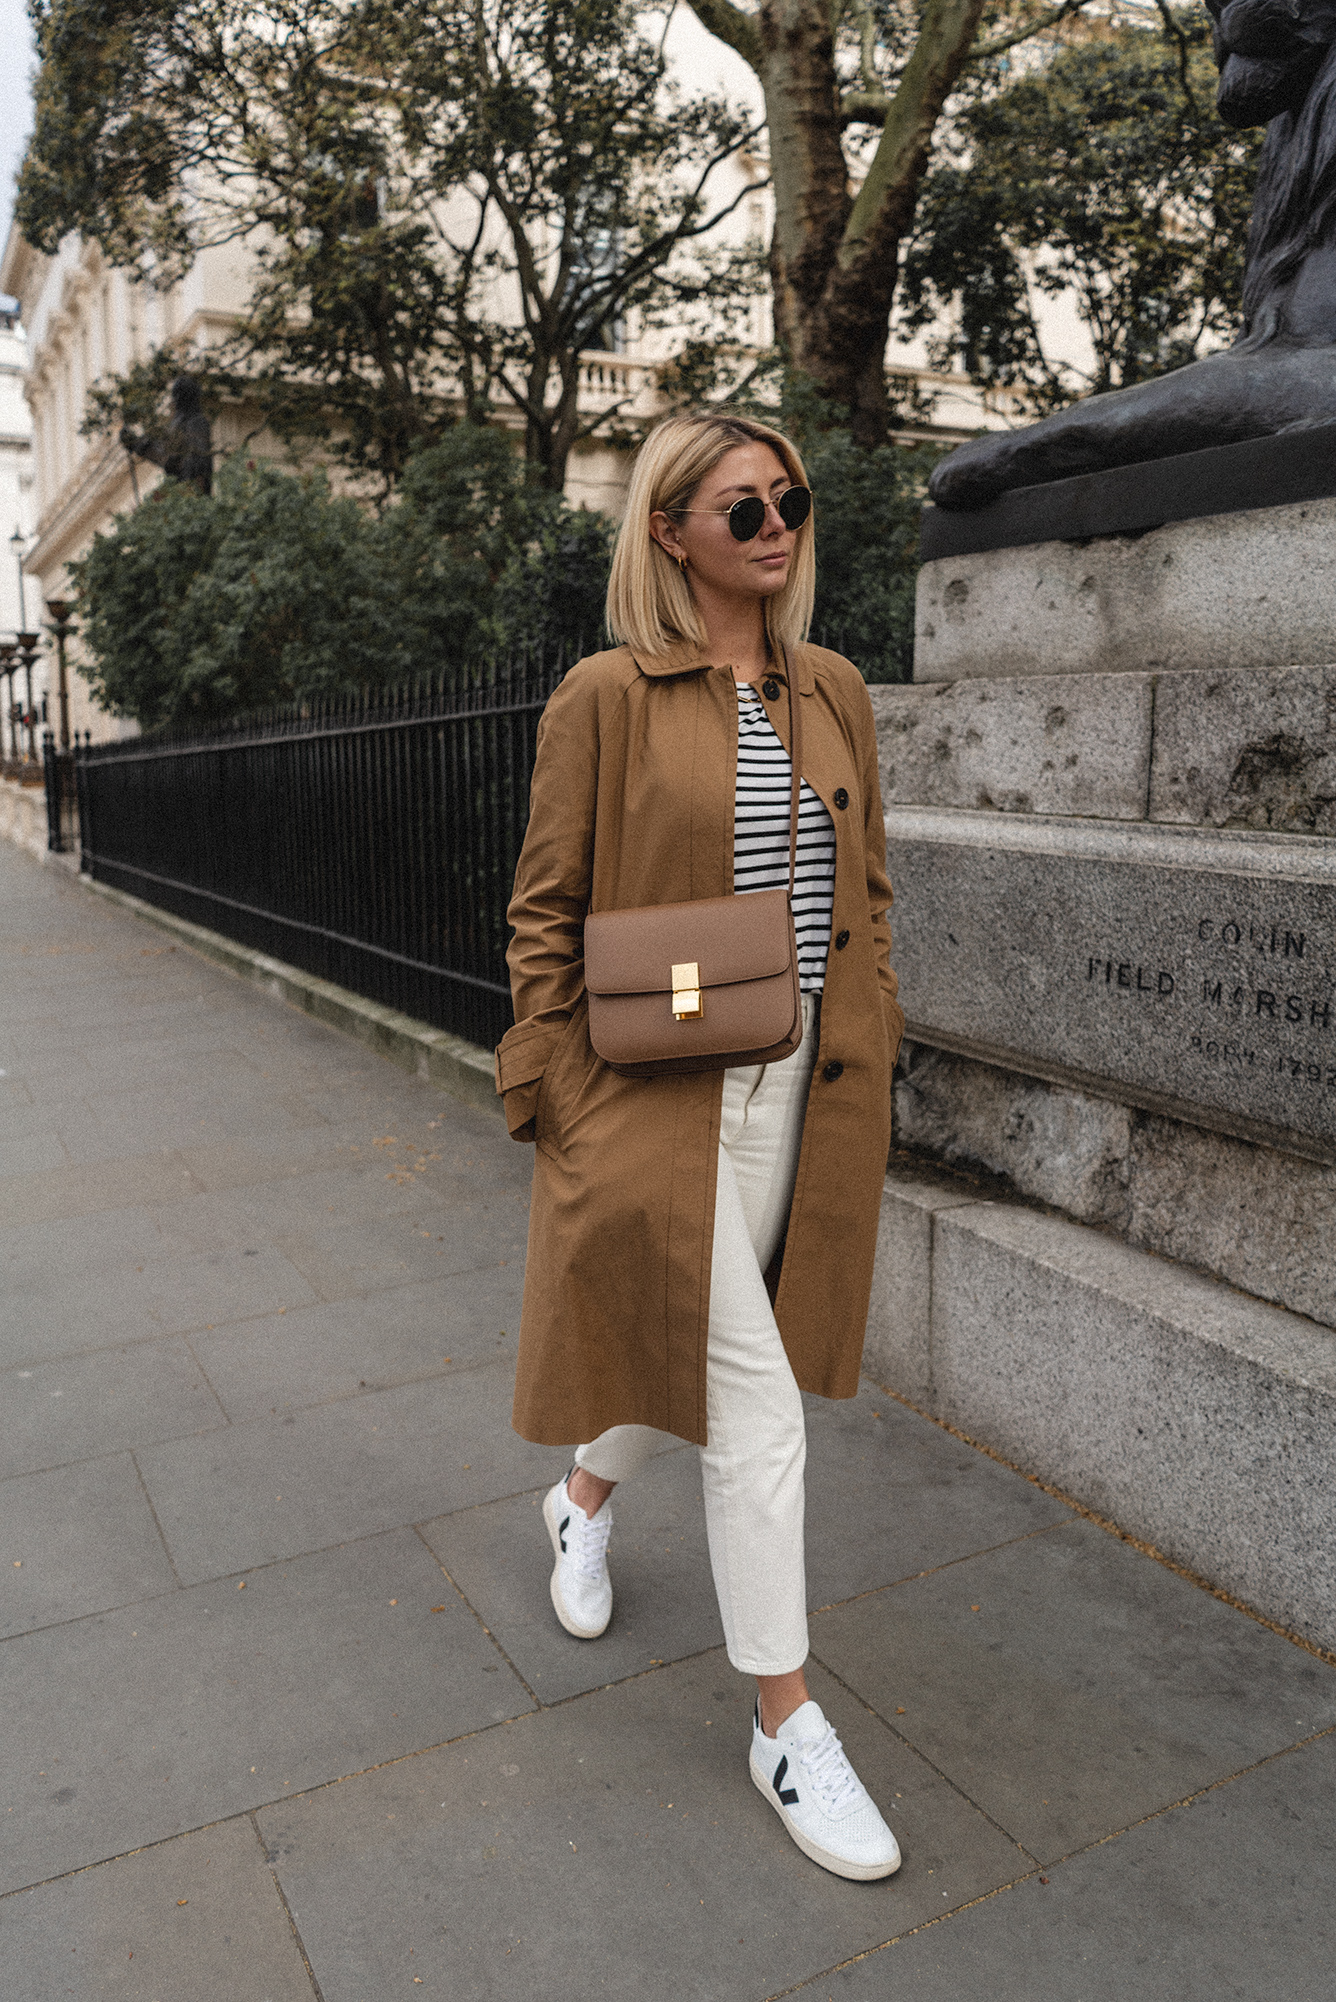 Emma Hill style, tan mac coat, stripe t shirt, white jeans, Veja V-10 trainers, Celine Box Bag, chic Spring outfit